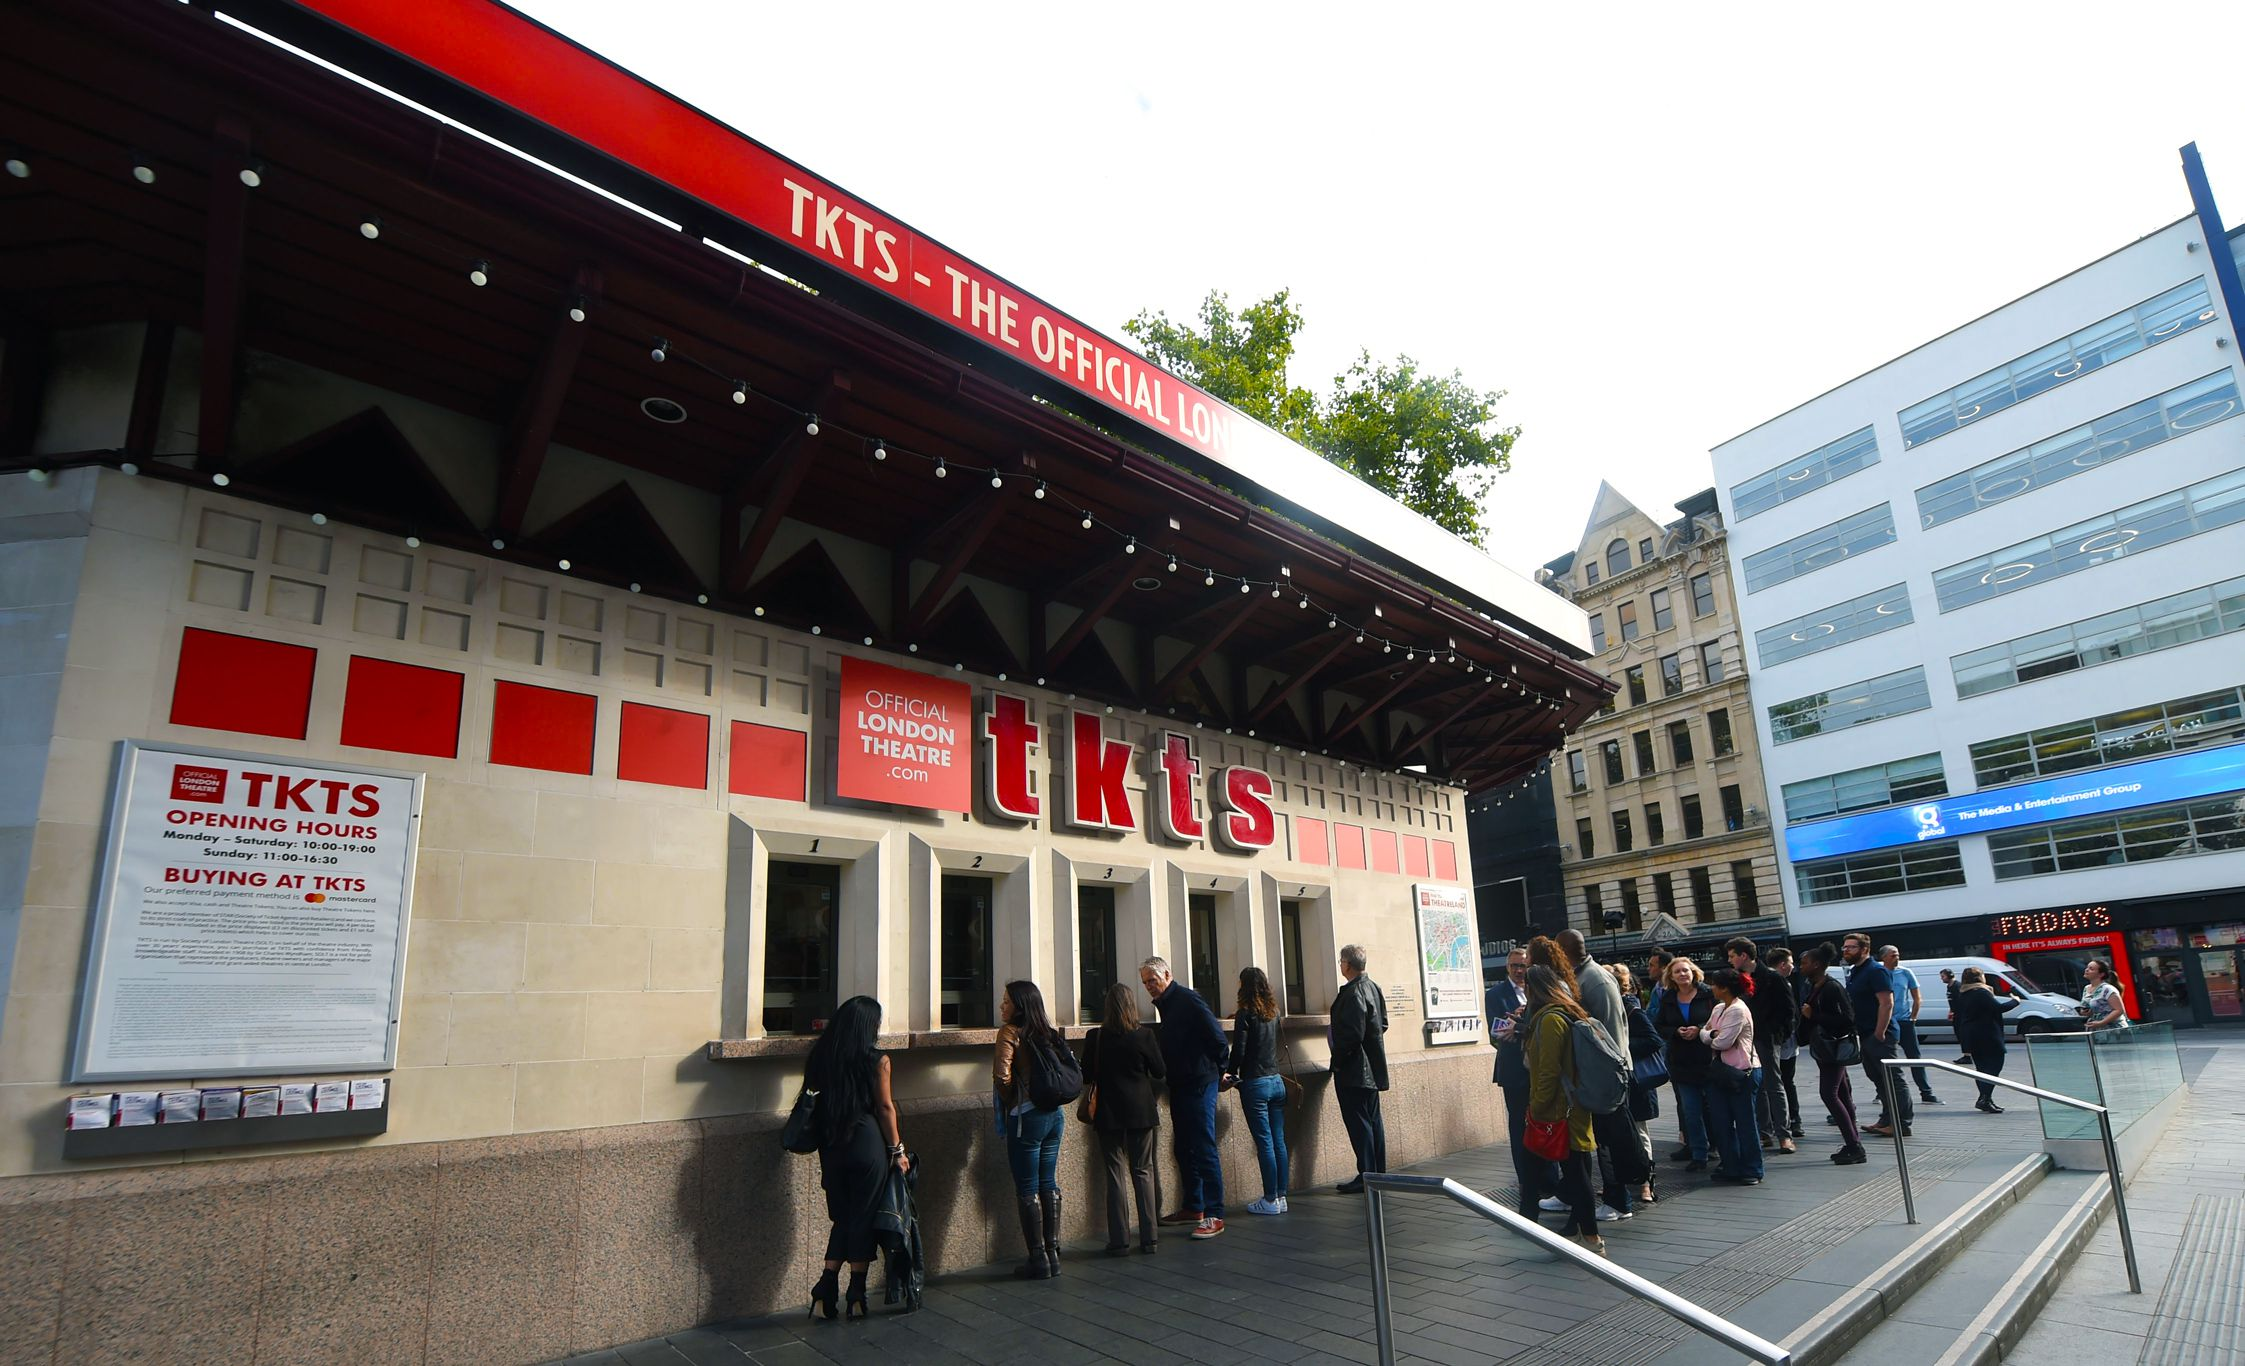 Cheap Theatre Tickets From Tkts At Leicester Square